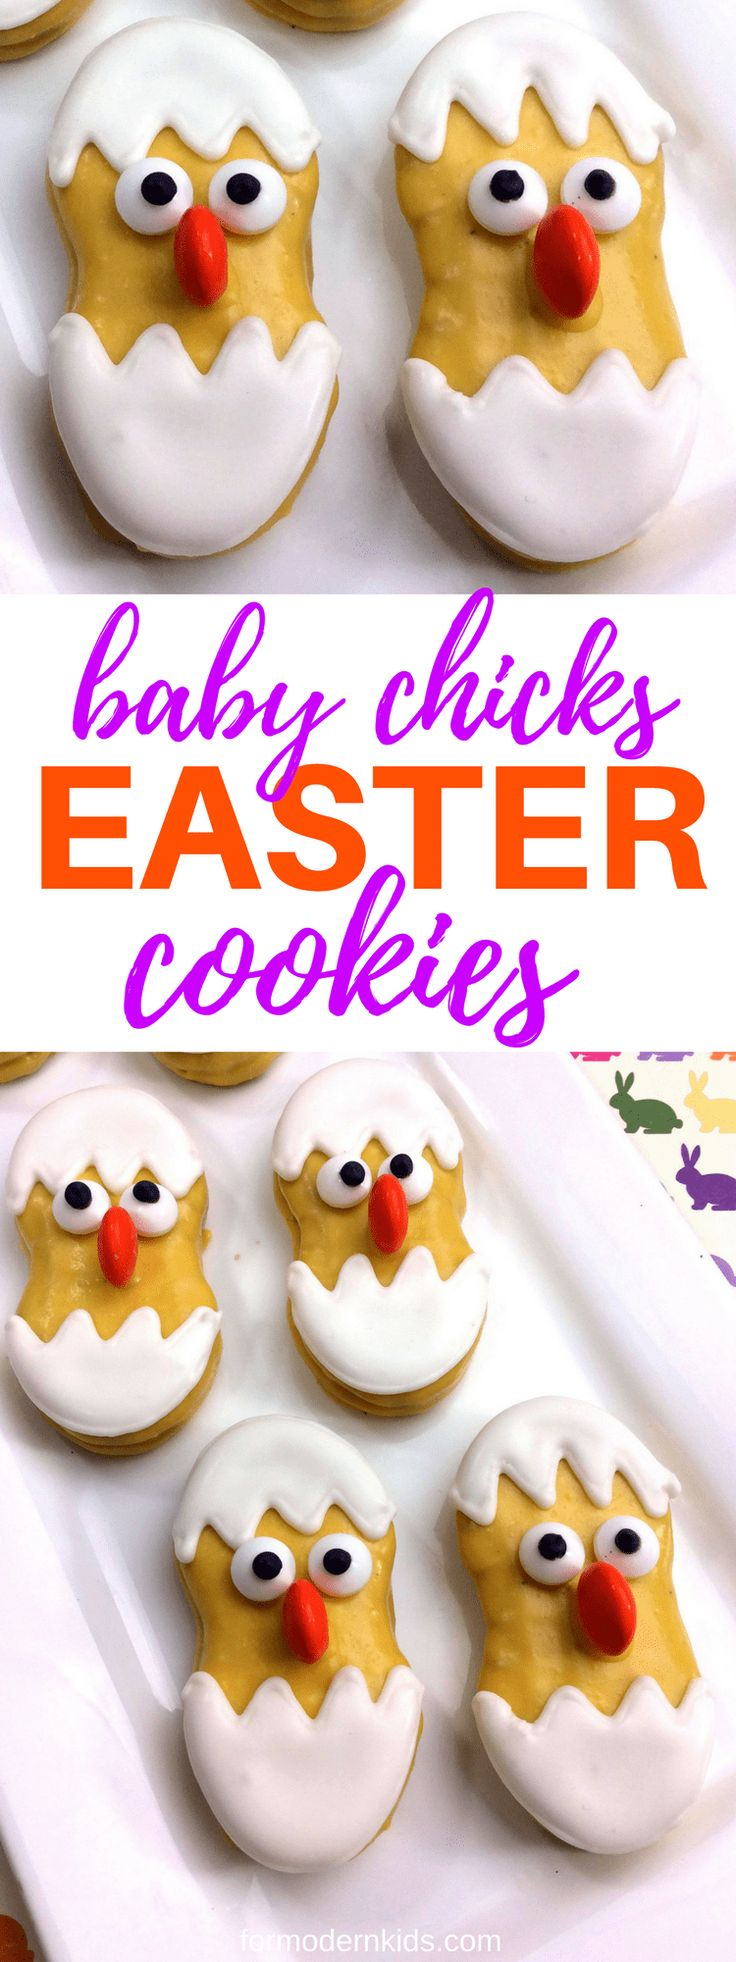 Baby Chicks Easter Cookie   For a fun Easter dessert, try this yummy recipe that uses Nutter Butter cookies. Make these Easter cookies as a fun treat or a snack after a fun game of Easter egg hunt. #Easter #EasterCookies #EasterRecipes